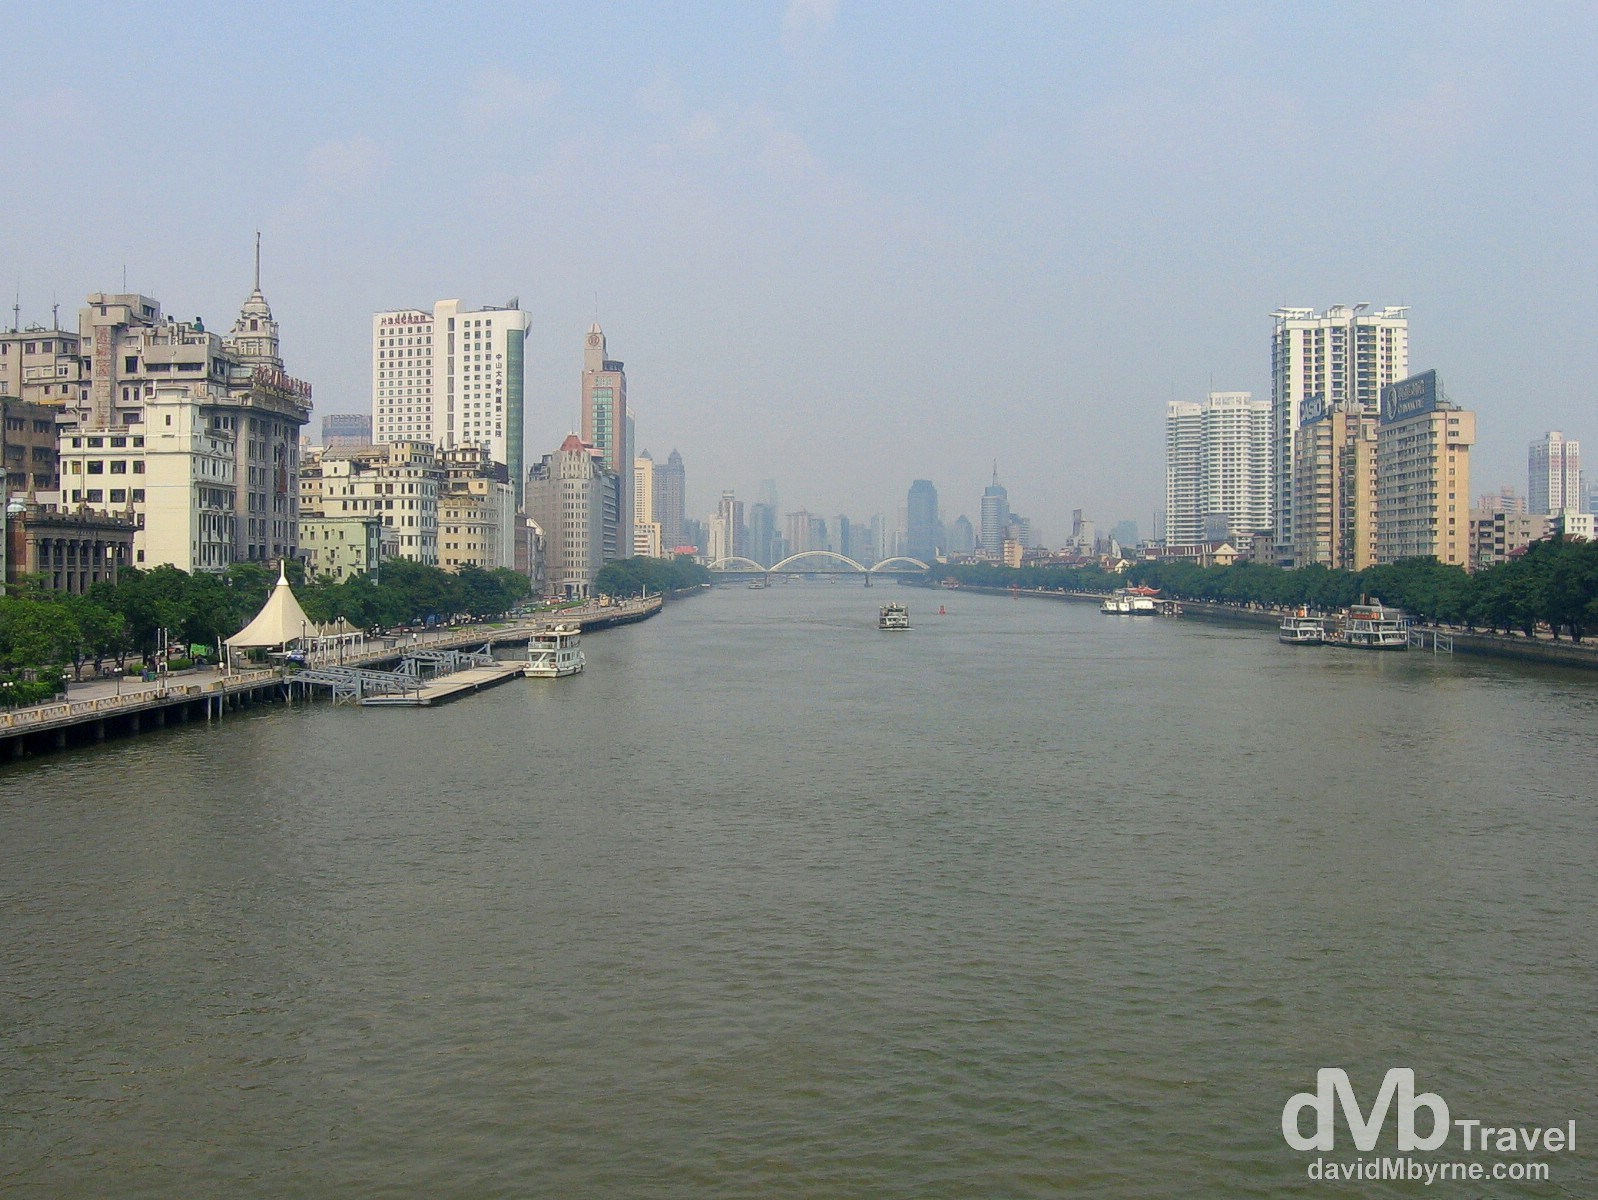 Guangzhou on the Pearl River in Guangdong Province, southern China. August 31, 2005.